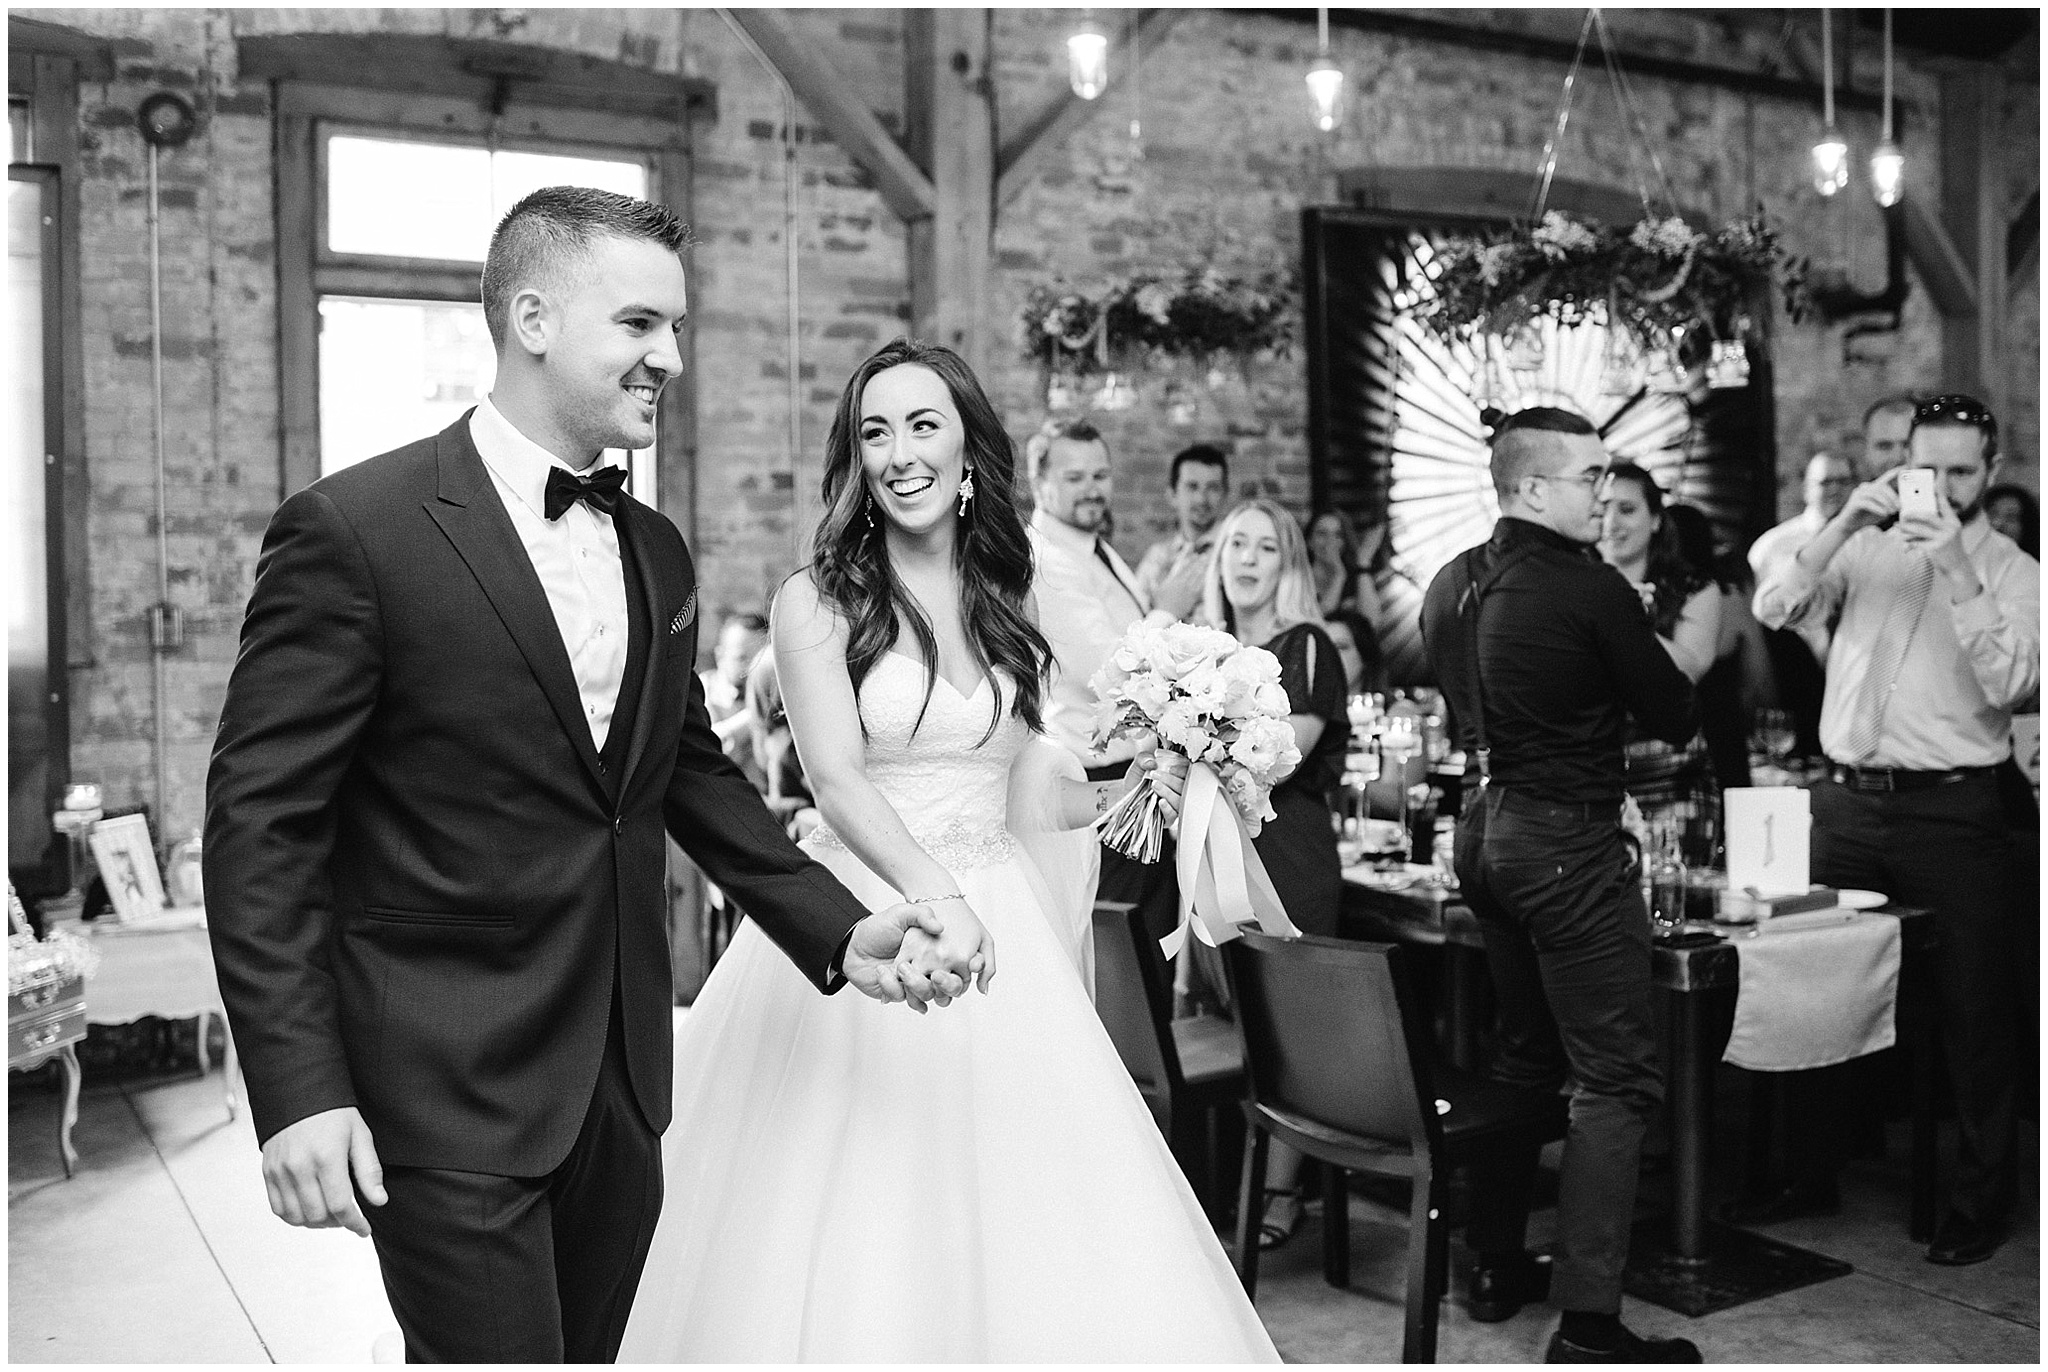 Archeo wedding reception | Distillery District wedding by Jenn Kavanagh Photography